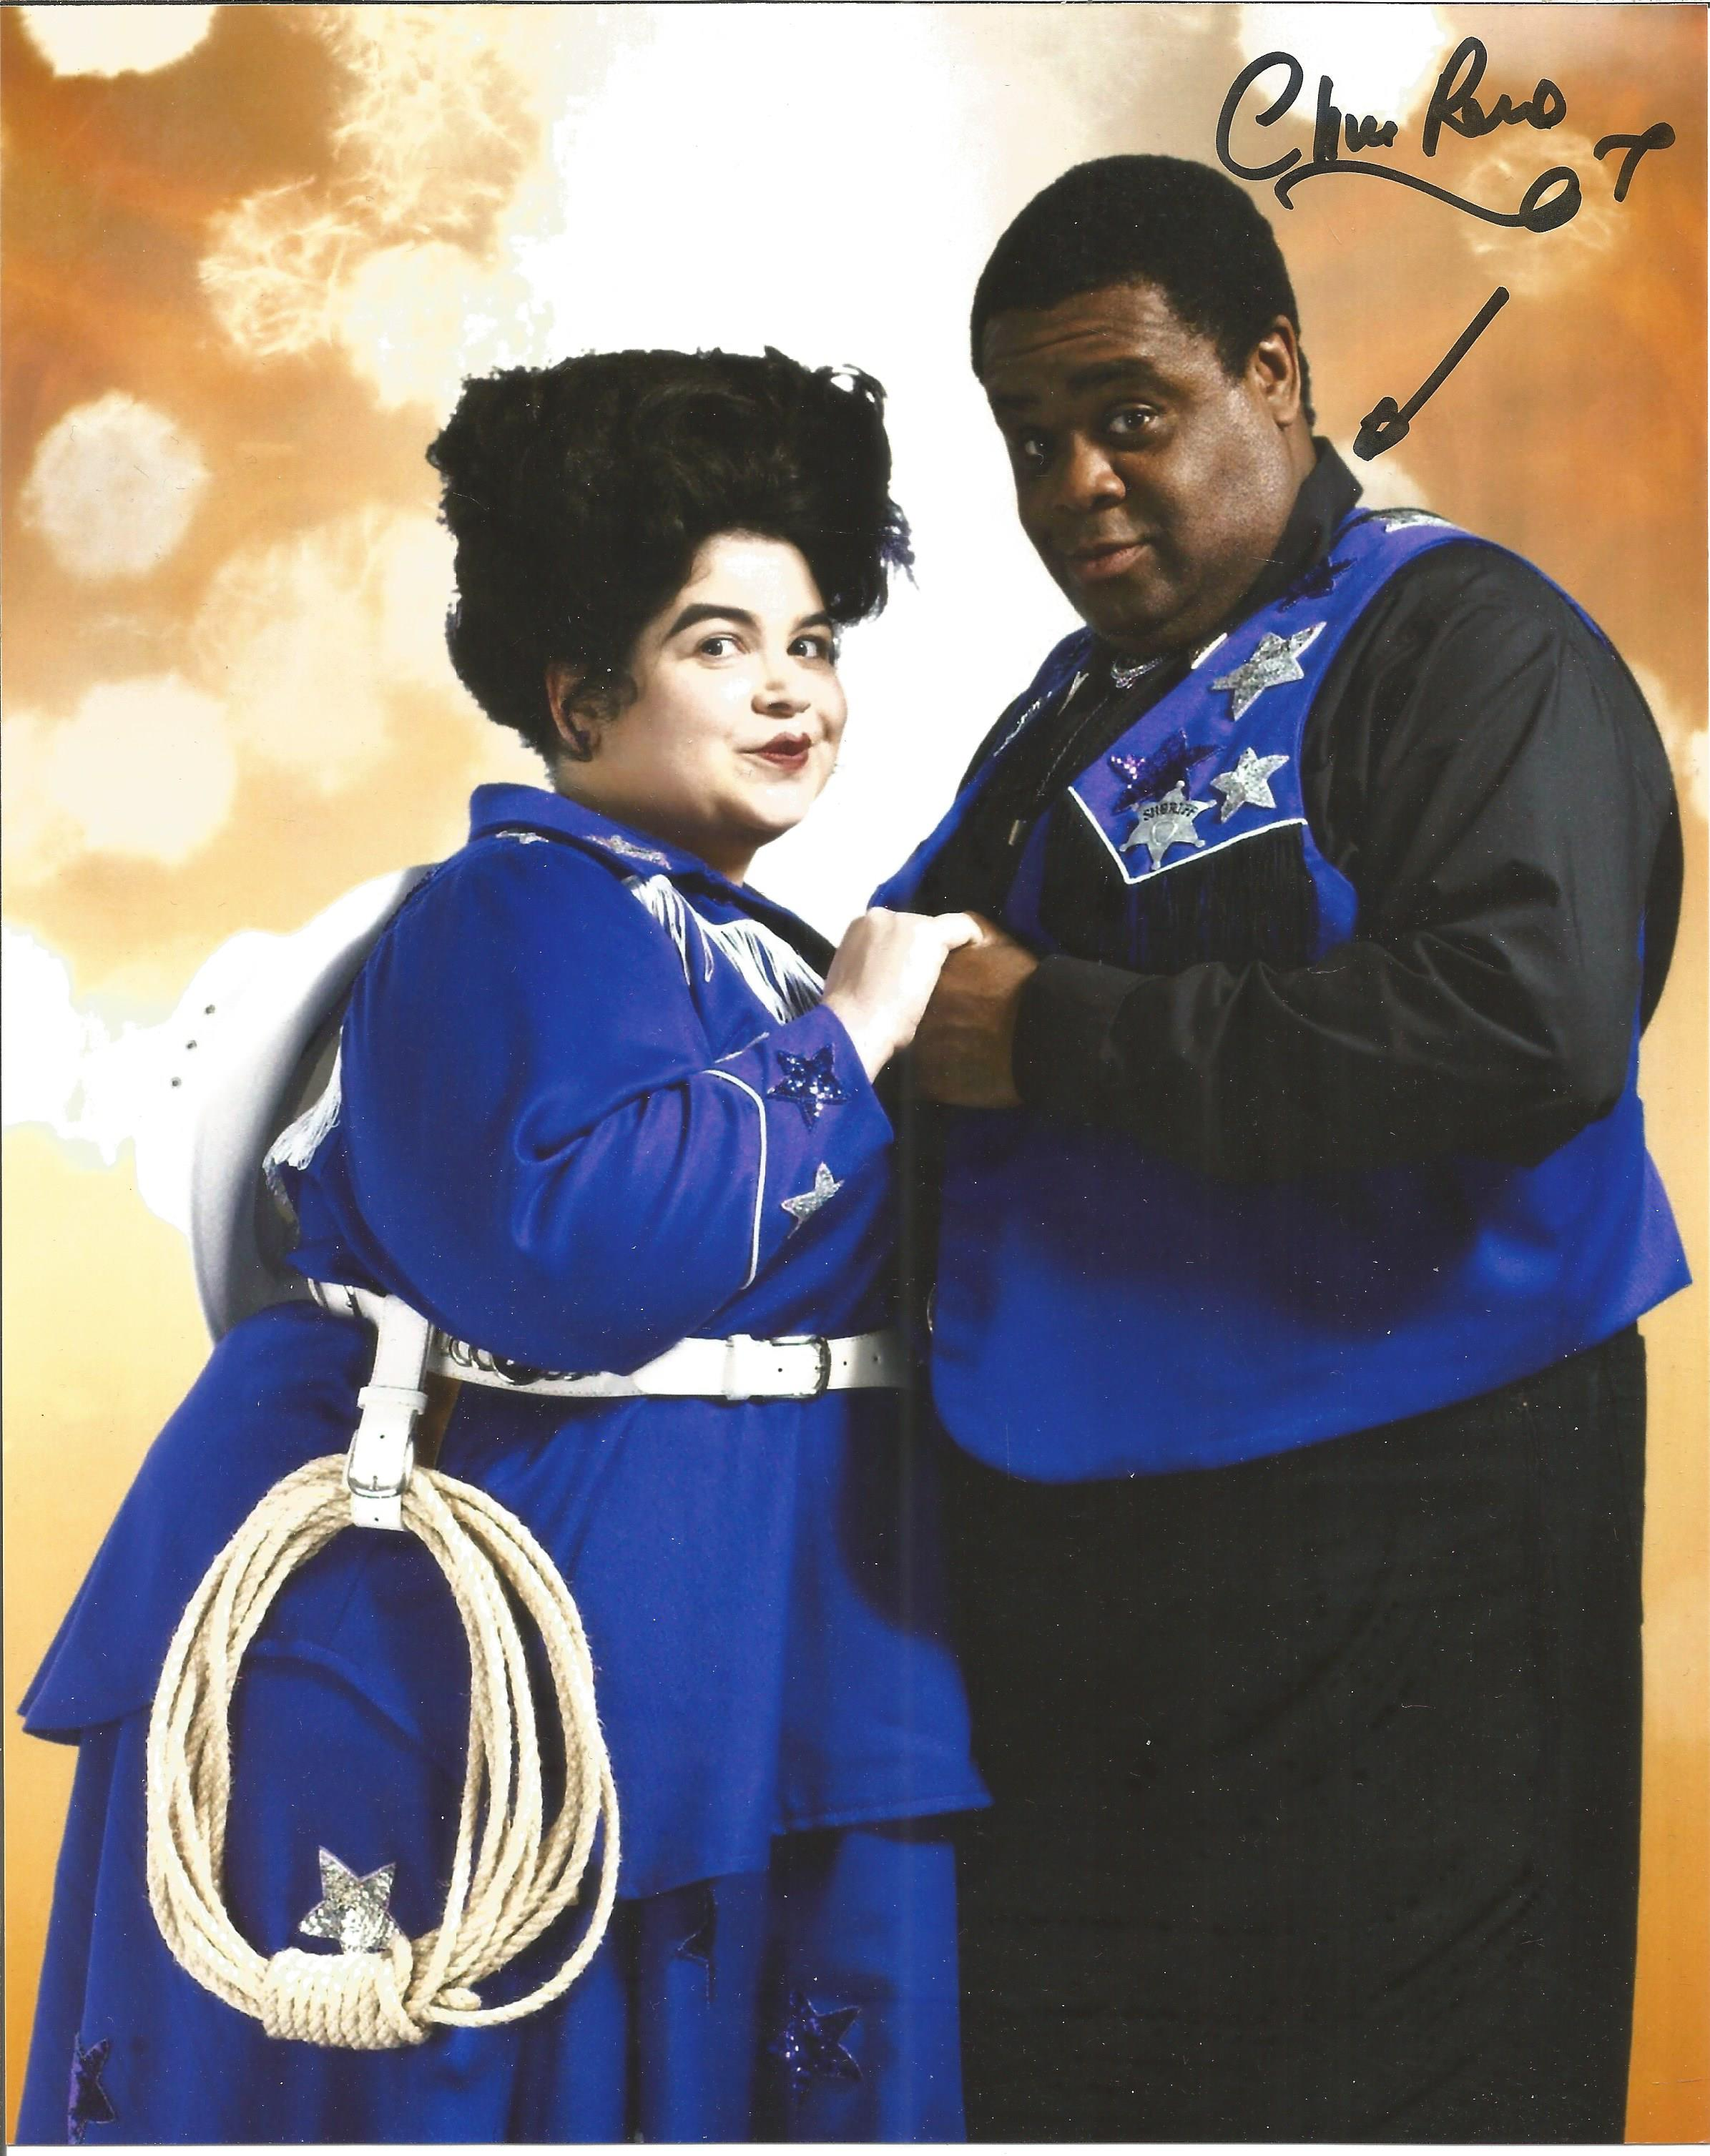 Clive Rowe signed 10x8 colour image. Clive is a British actor, best known for his role as Norman